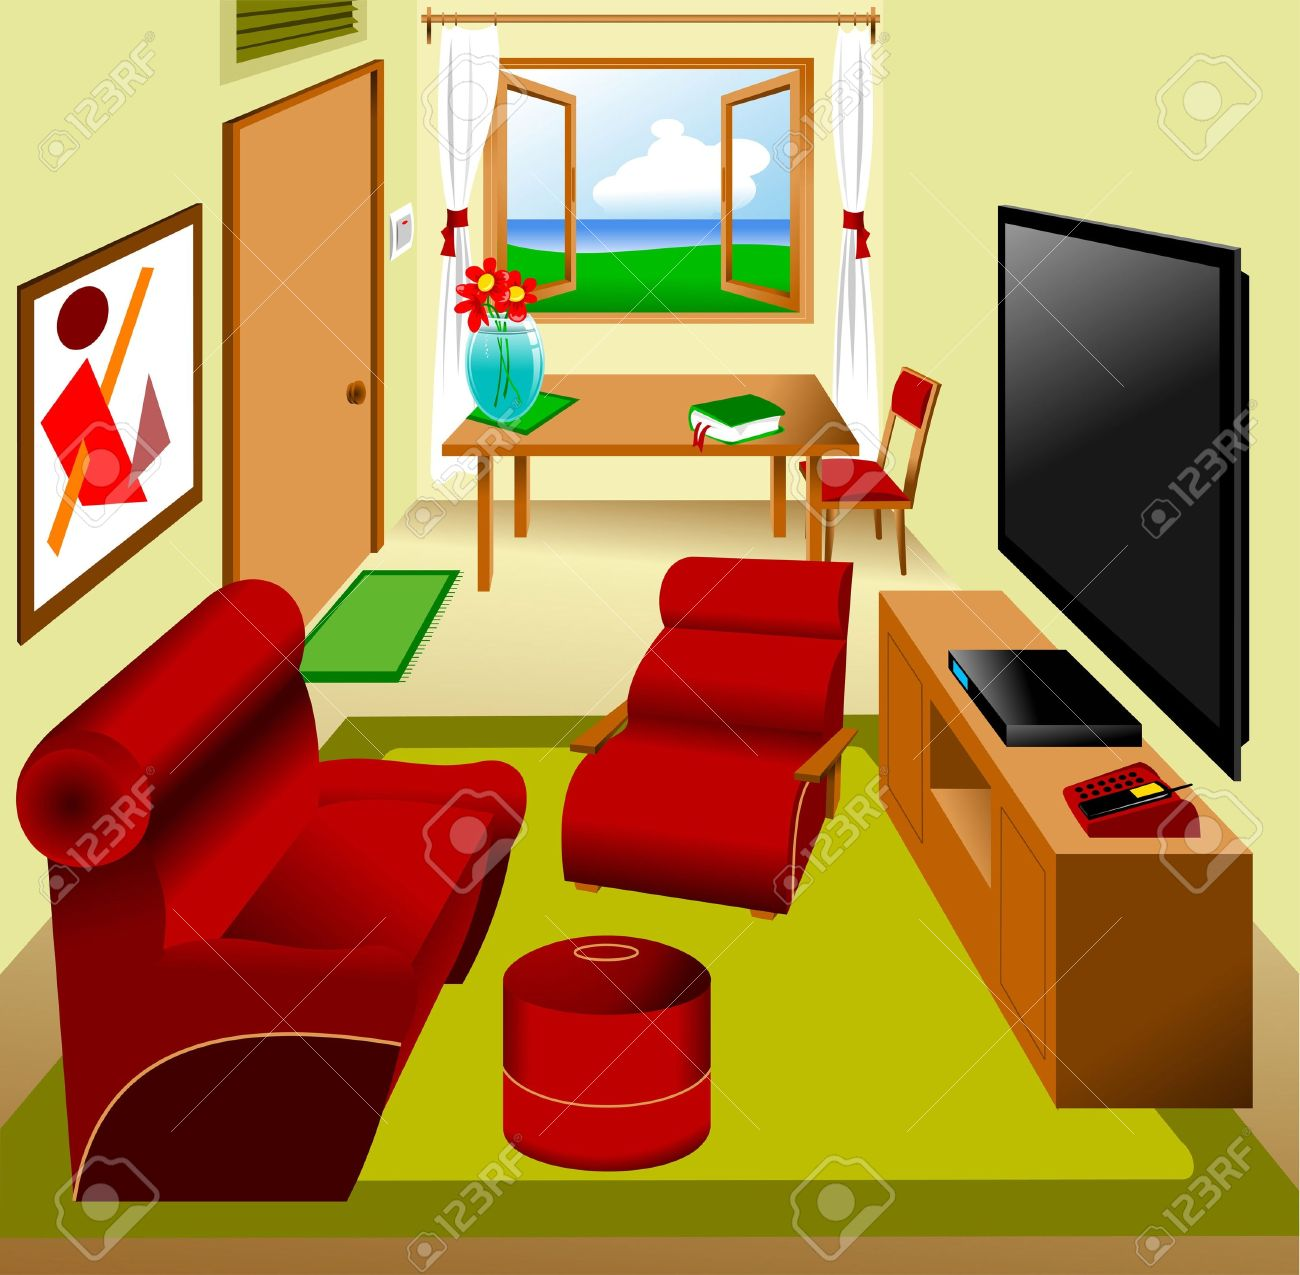 Living Room Clipart Flow Fund Main Saloon In The Apartment Furnished Vector Royalty Free